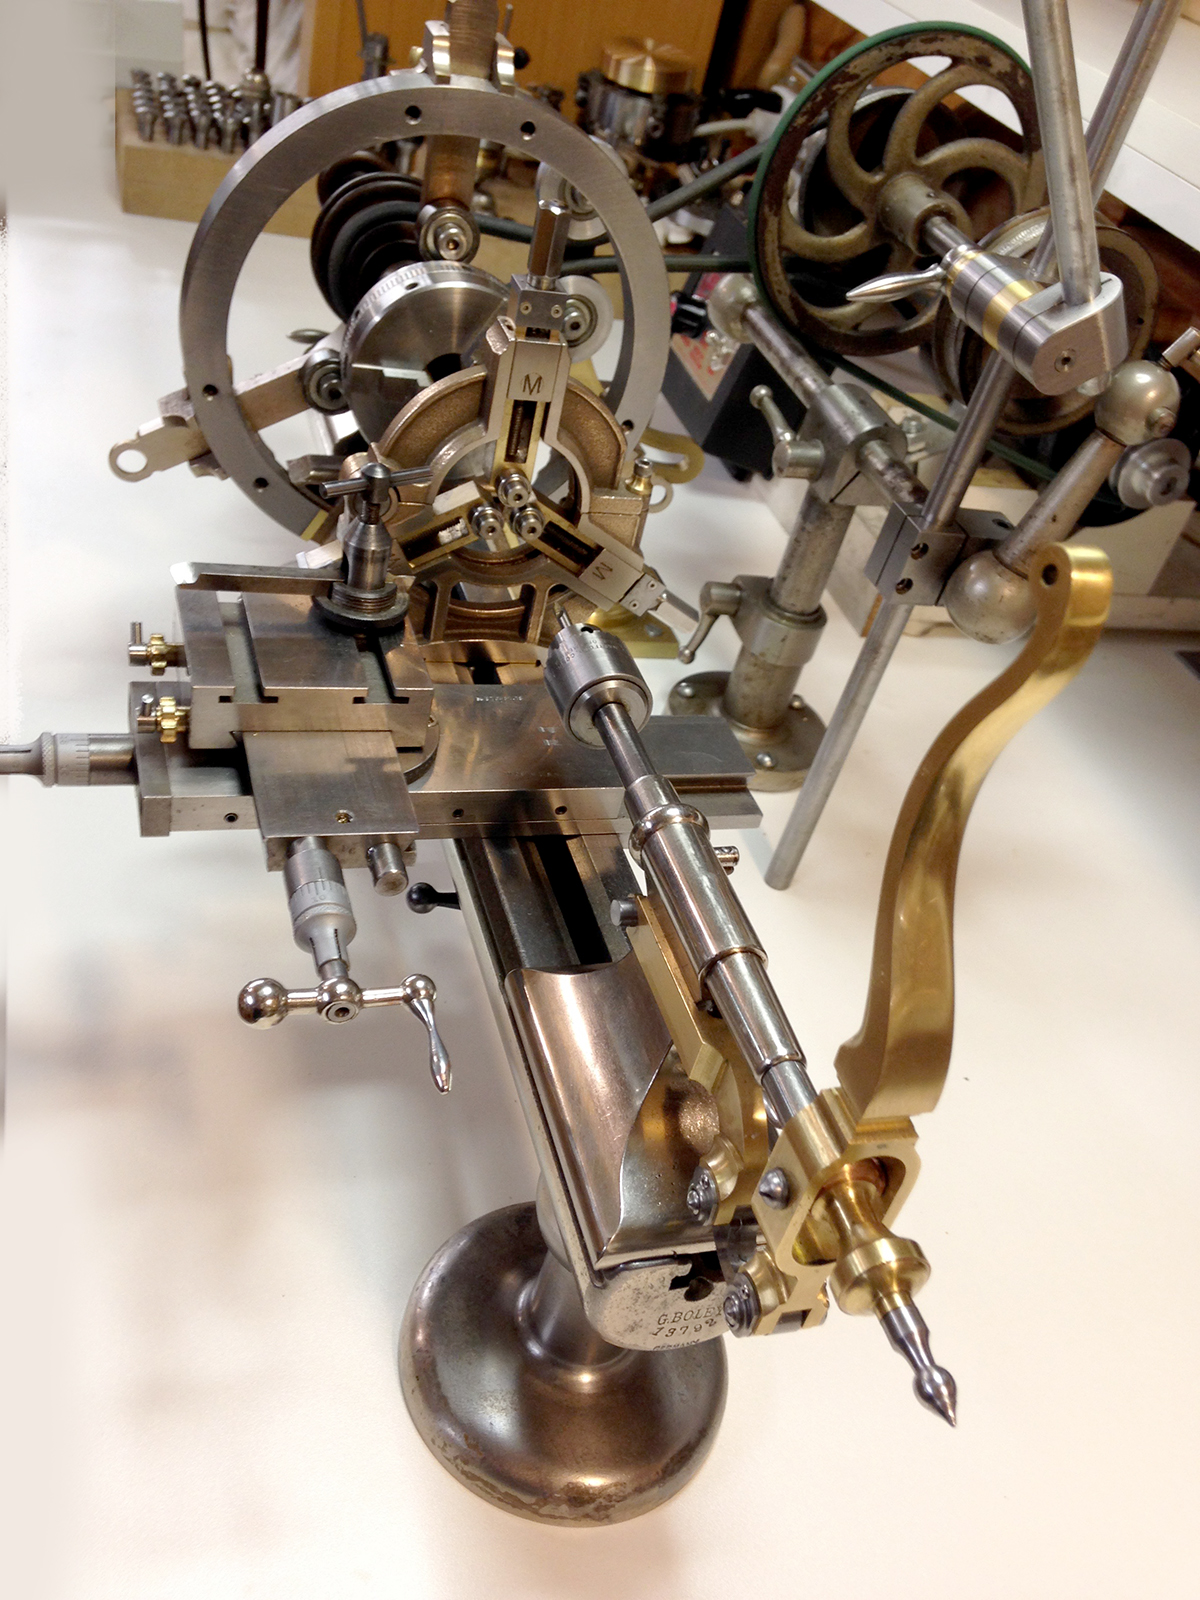 Mowrer Ww Lathe Tools  The Fully Dressed Watchmakers Lathe